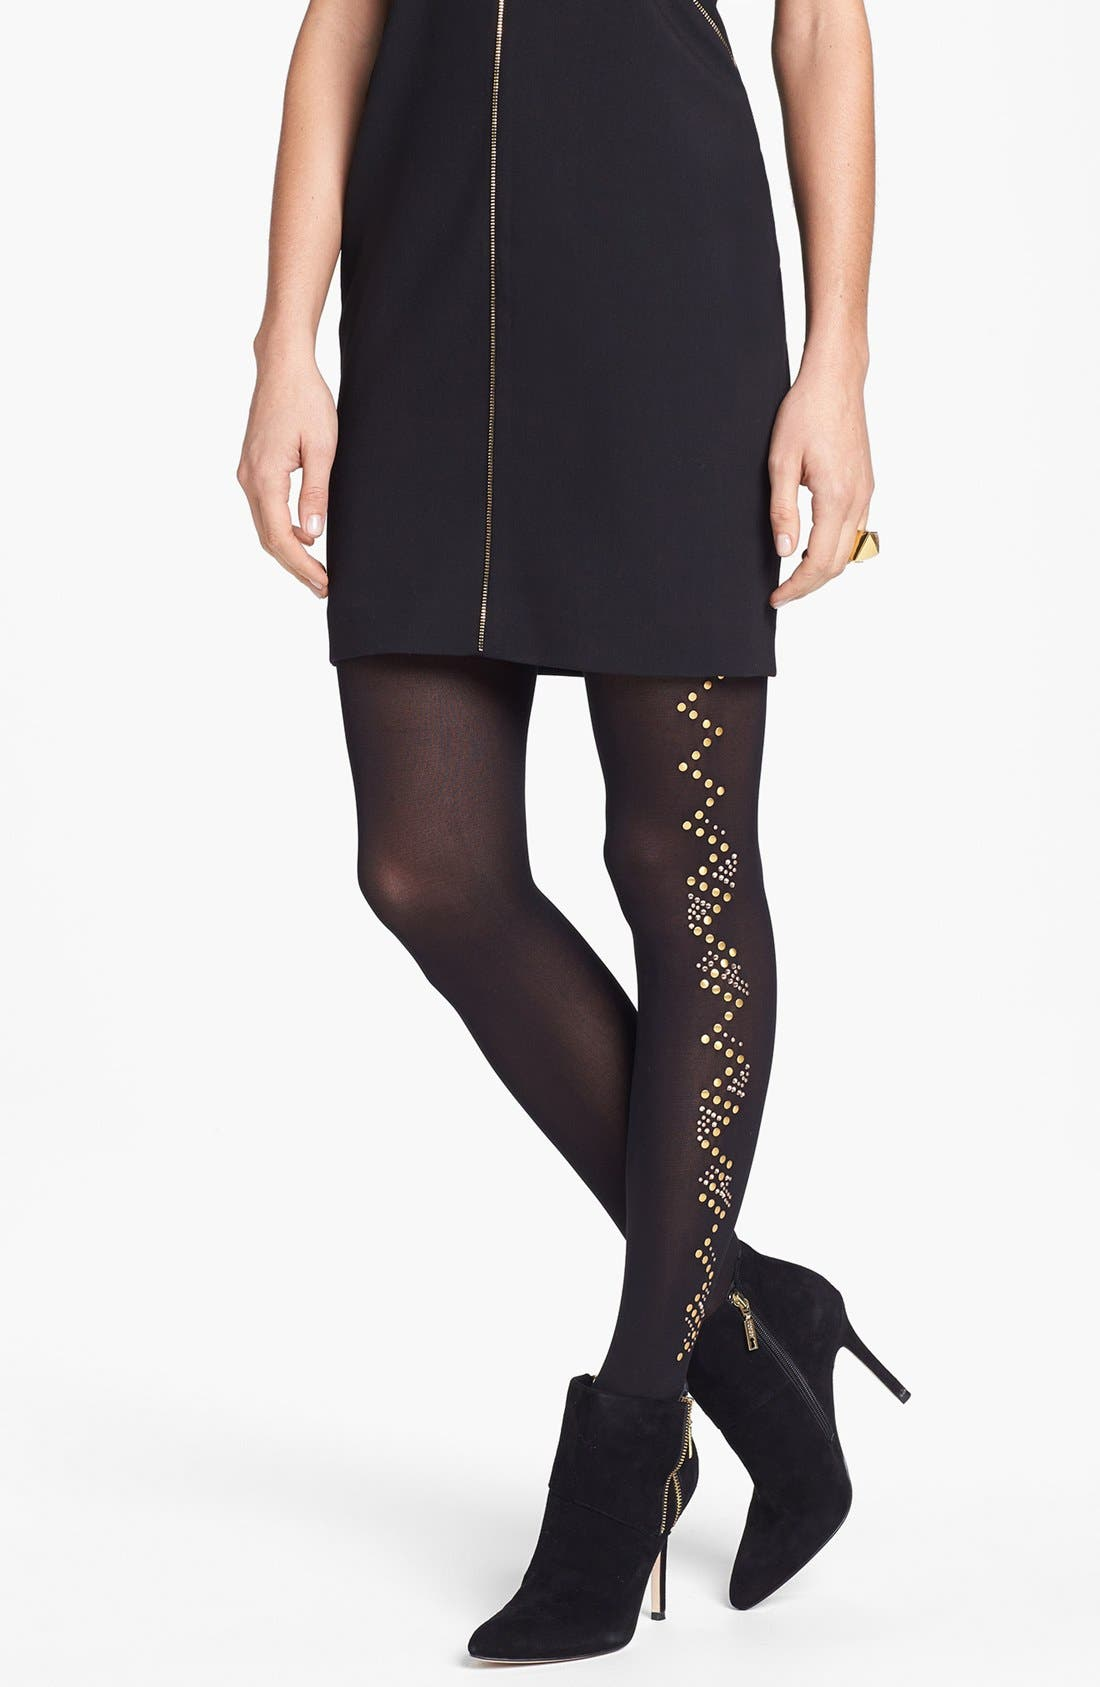 Alternate Image 1 Selected - Pretty Polly 'Glitzy' Embellished Tights